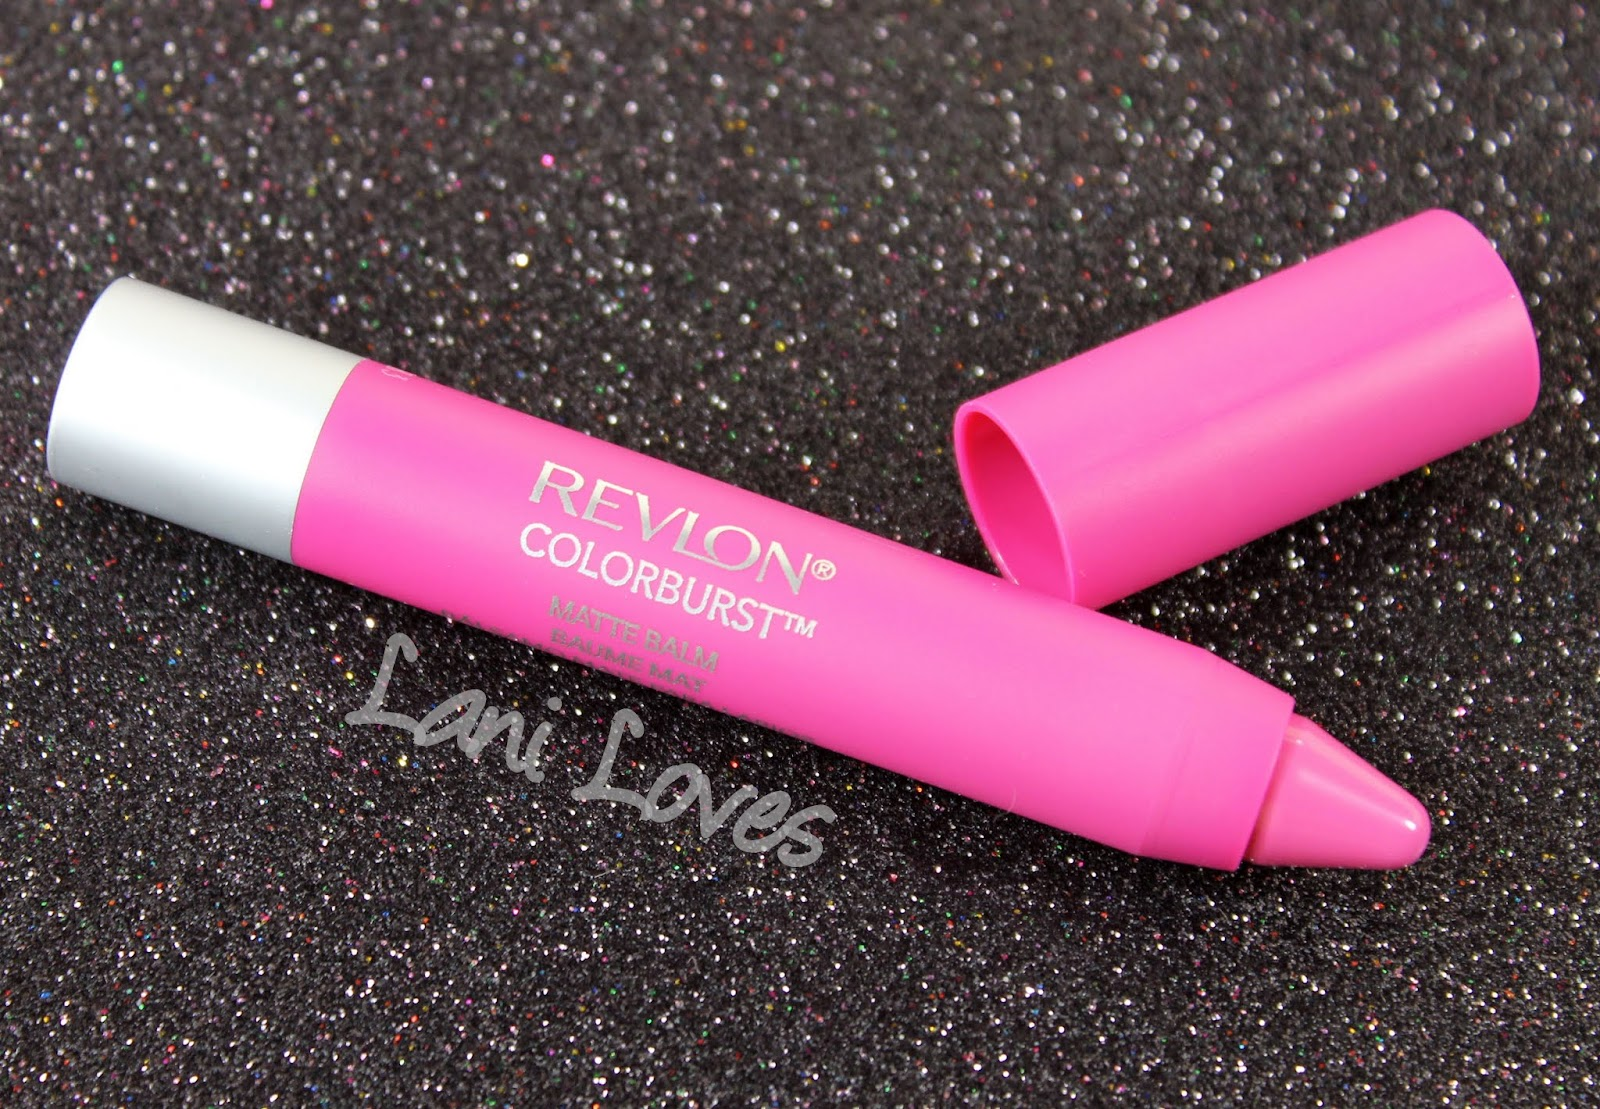 Revlon Colorburst Matte Balm - Showy Swatches & Review